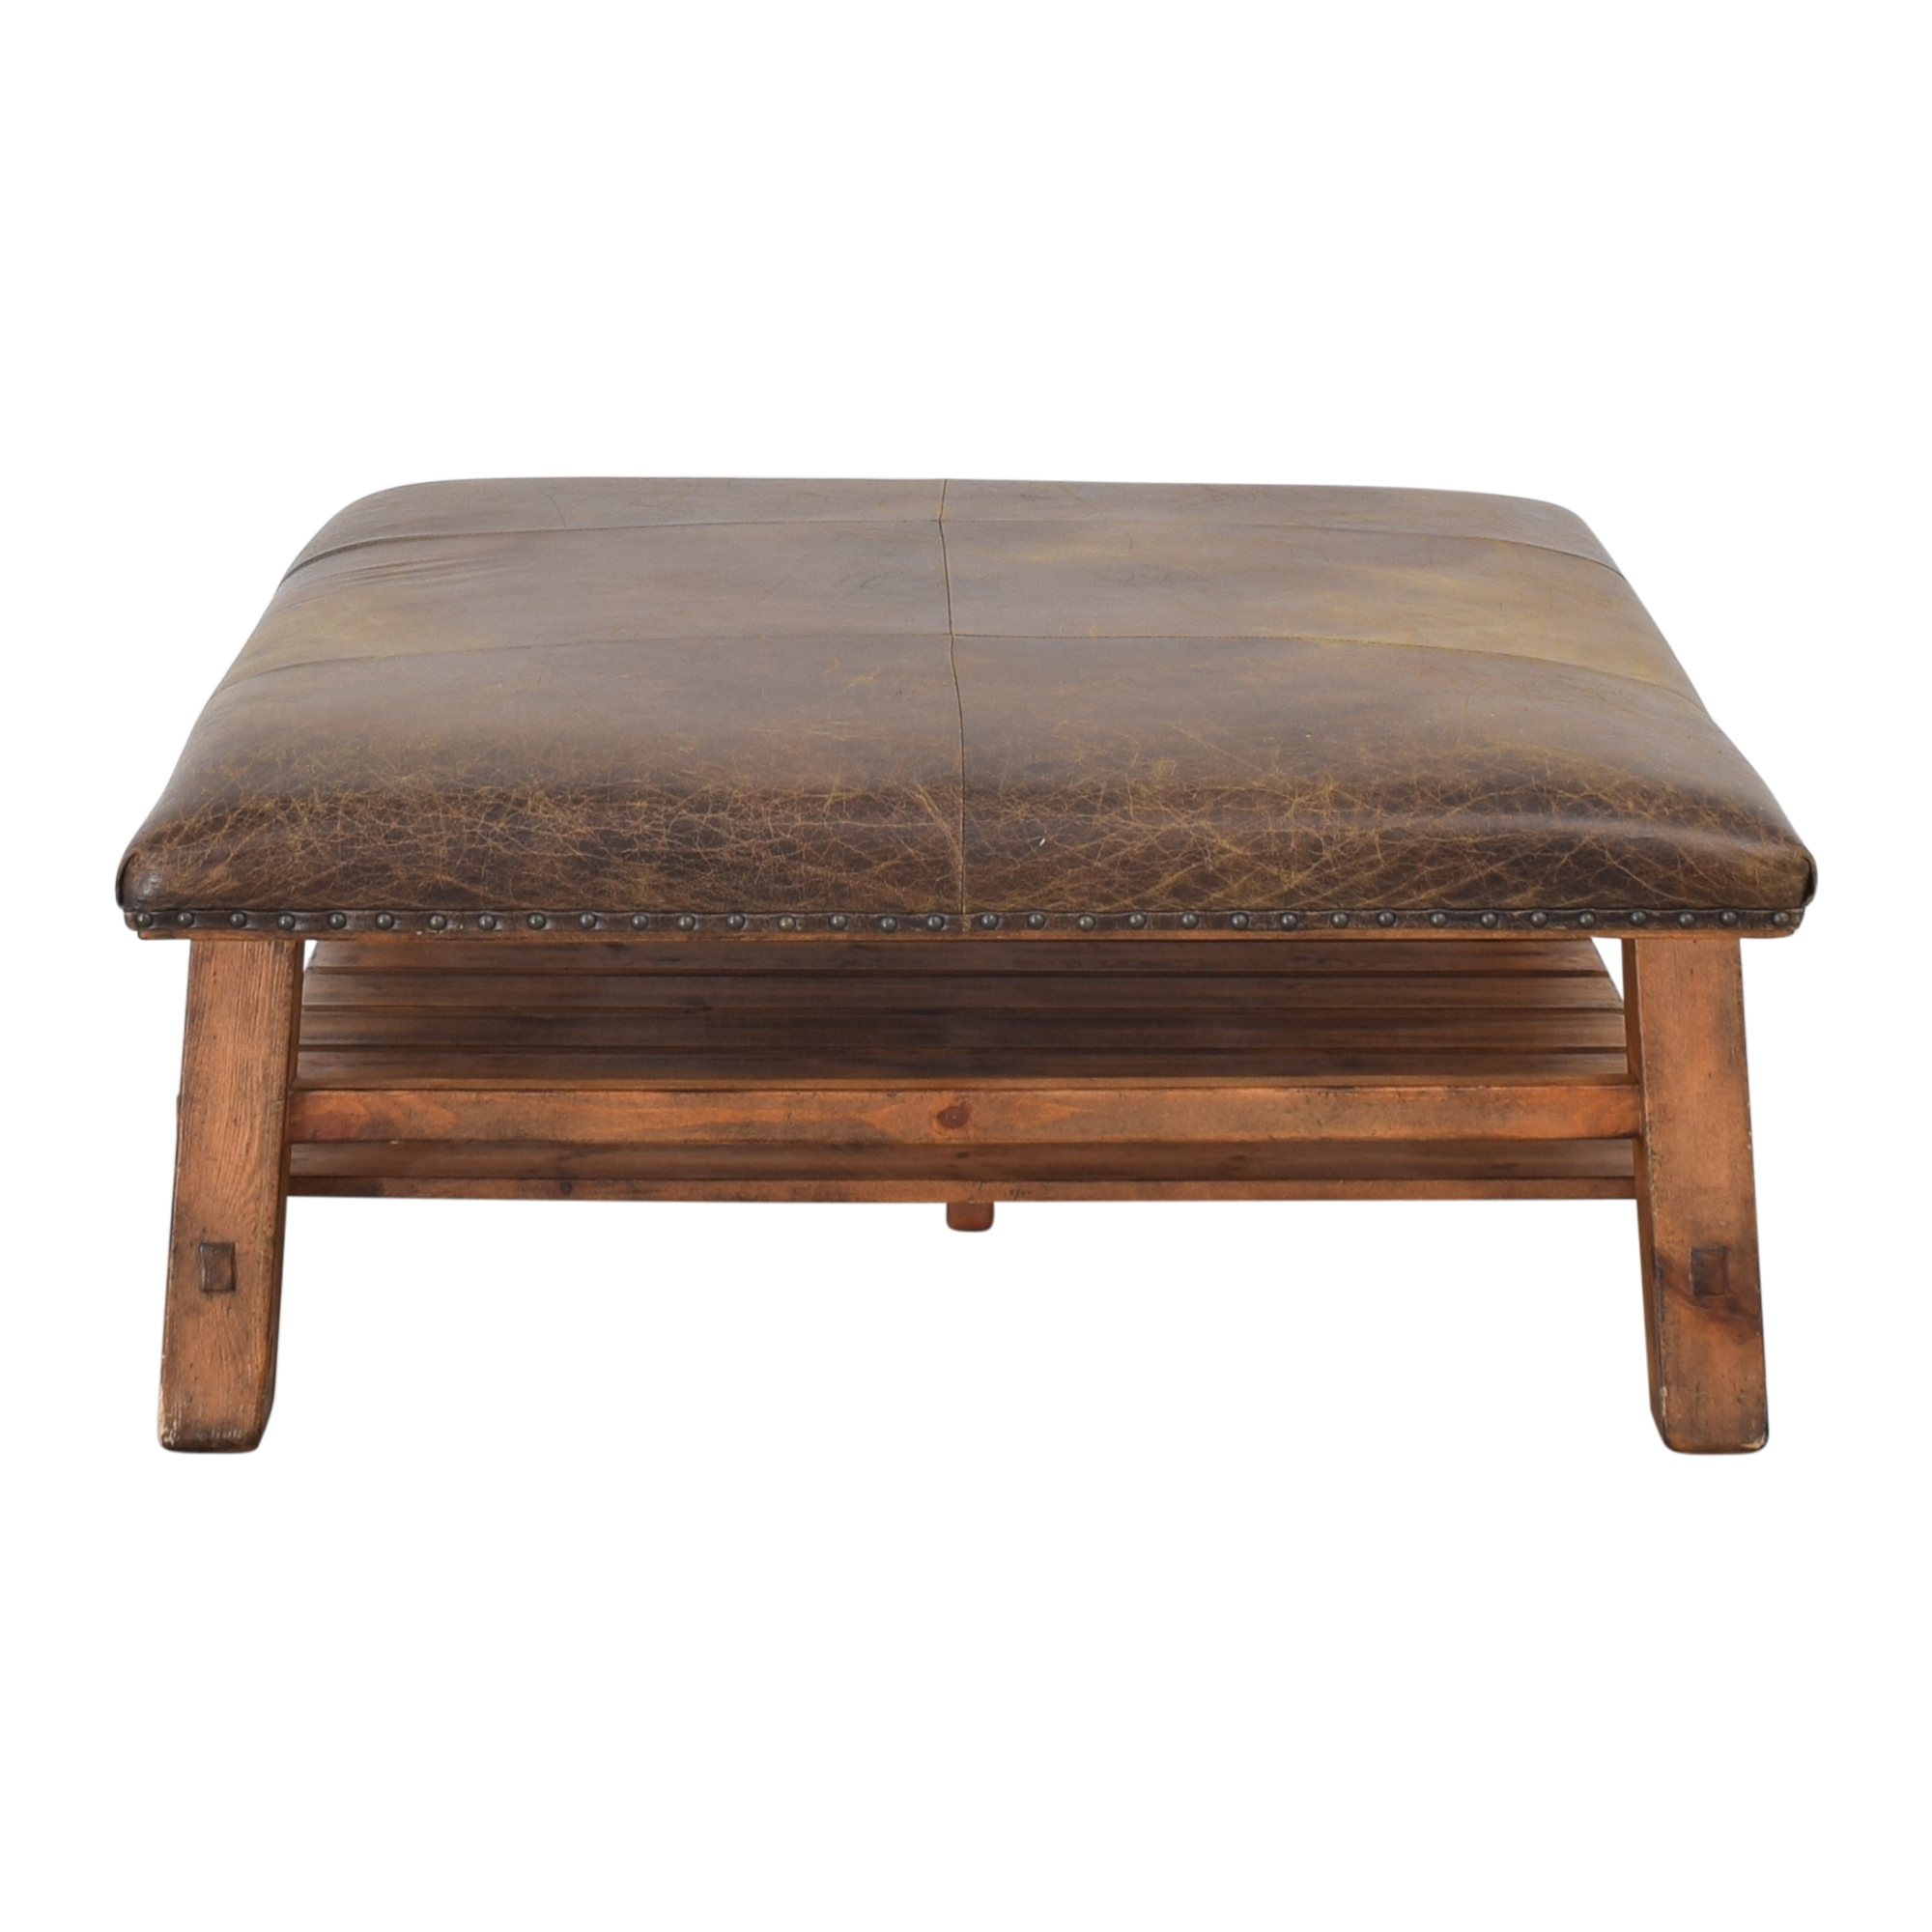 shop Pottery Barn Pottery Barn Caden Square Ottoman or Coffee Table online